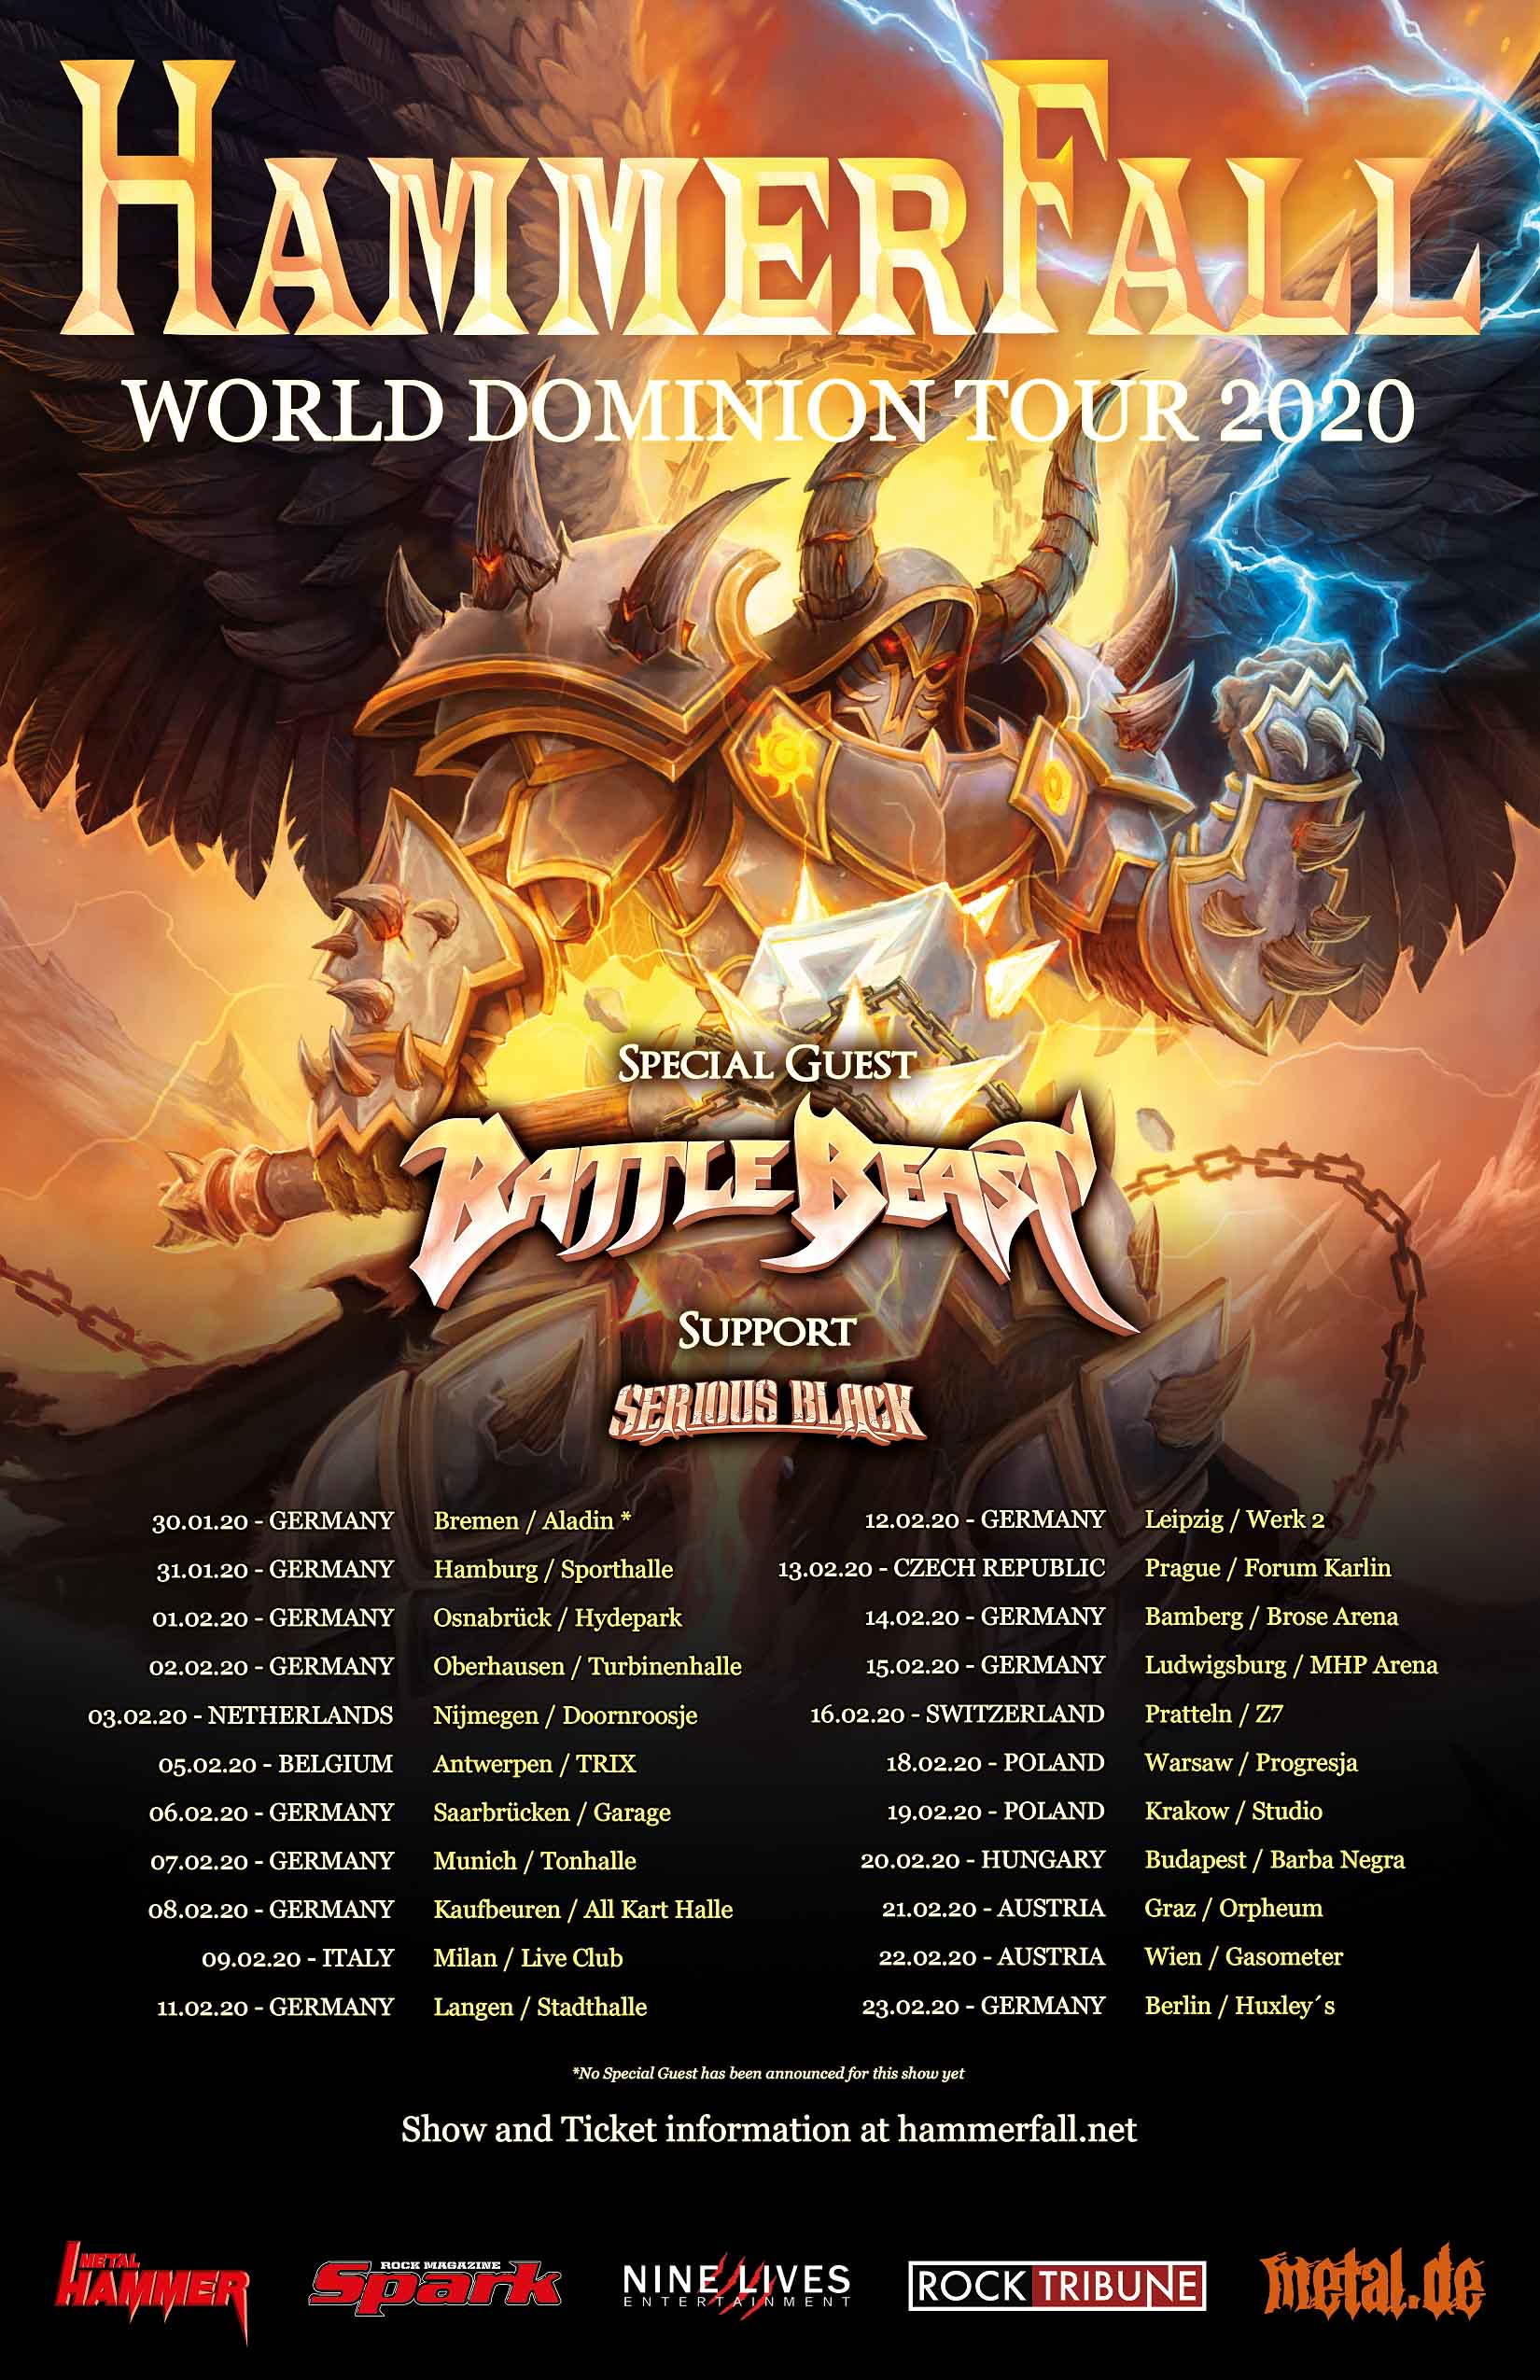 Hammerfall World Dominion Tour 2020